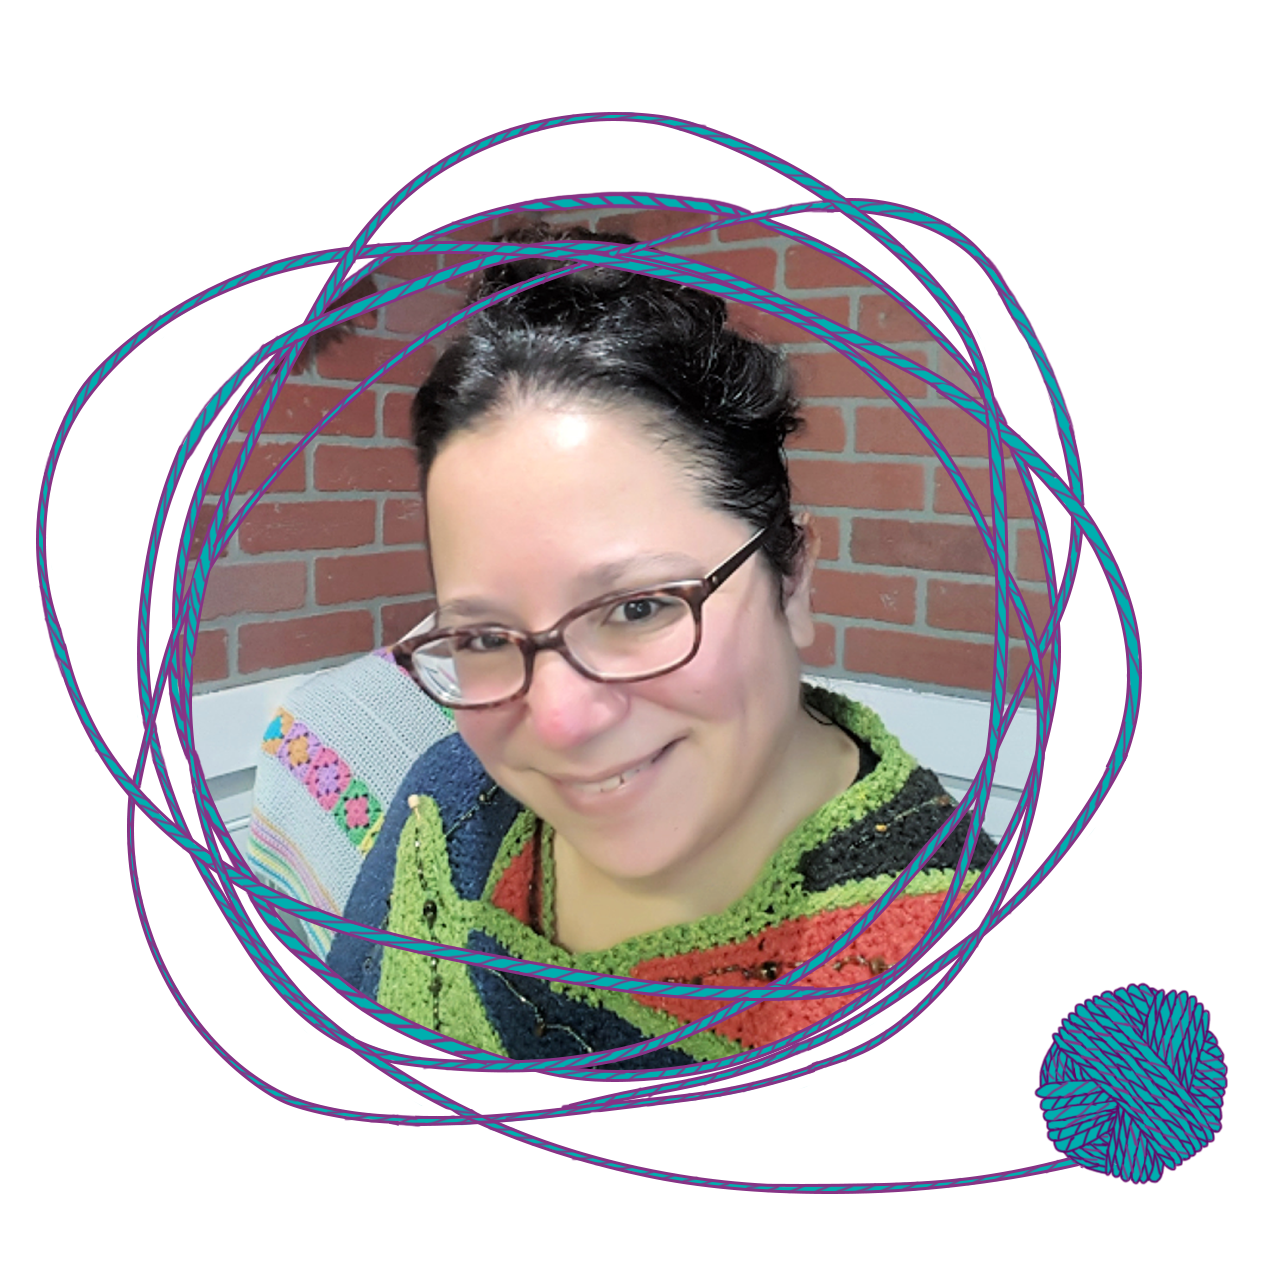 Round image of Jessie Rayot with a border of yarn